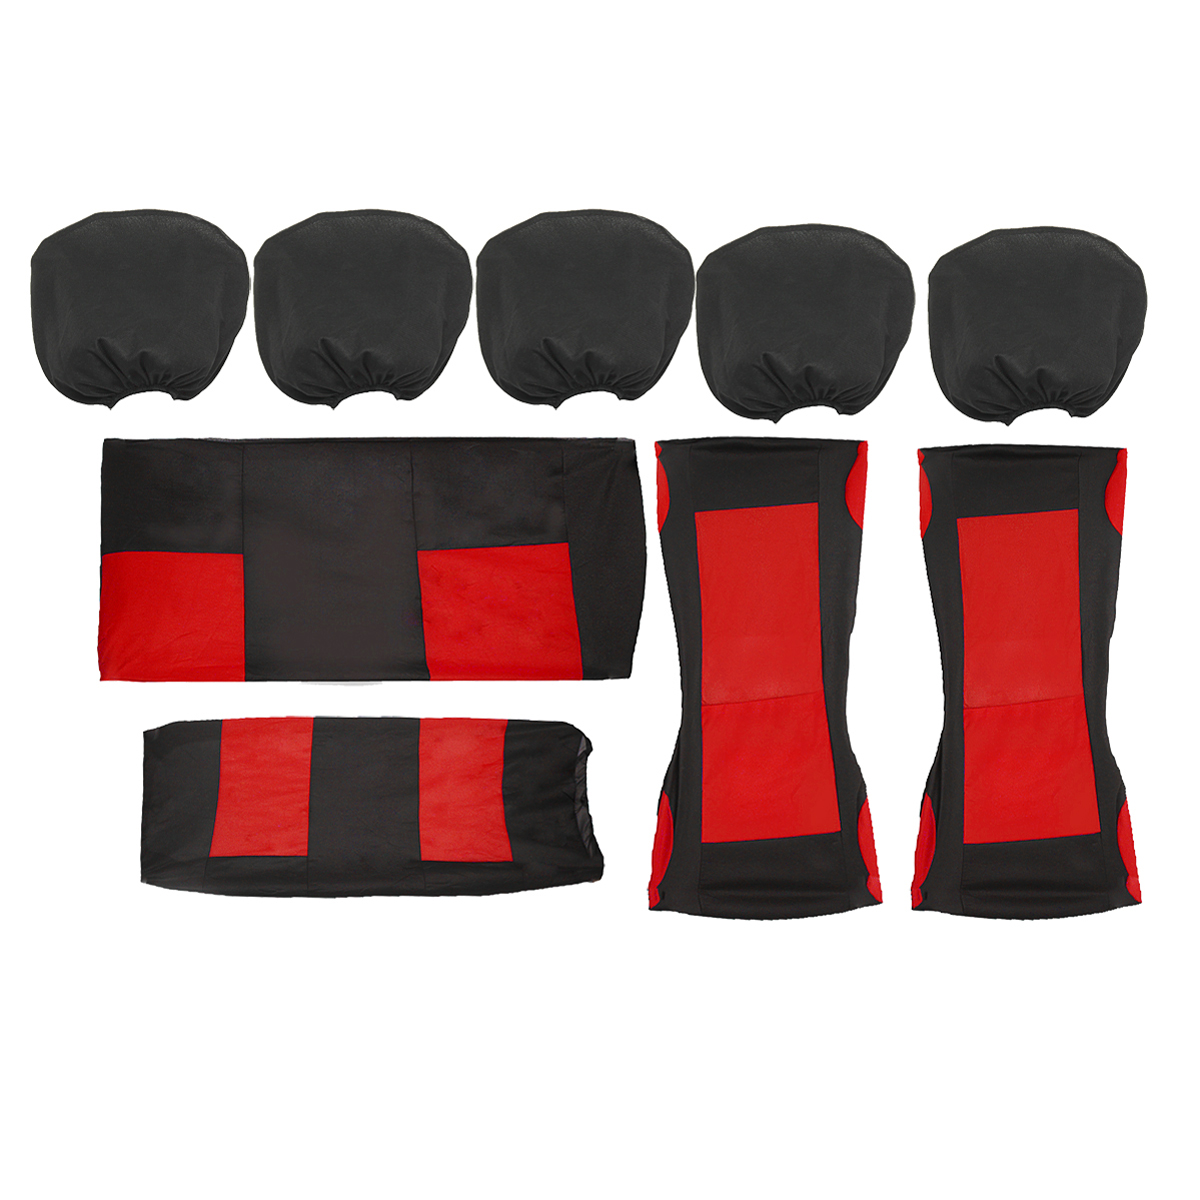 9Pcs/set Universal Car carseatcover Seat Cover + Hooks Full Set For Auto Front + Rear Seat Headrests